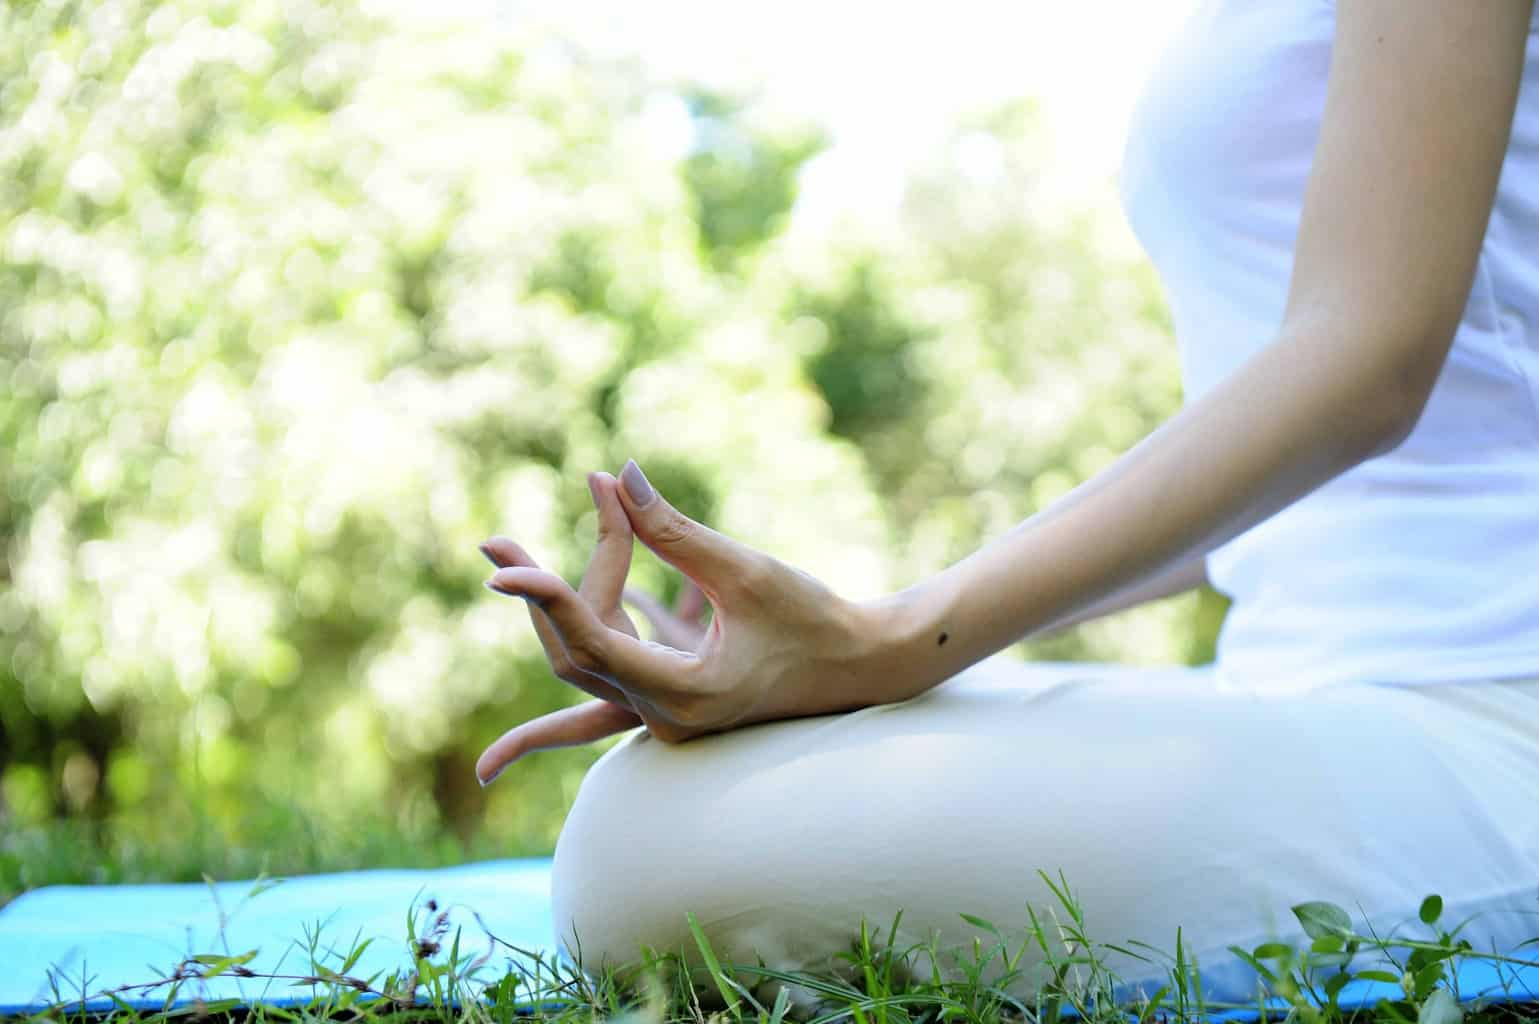 Woman wears white doing meditation in the park